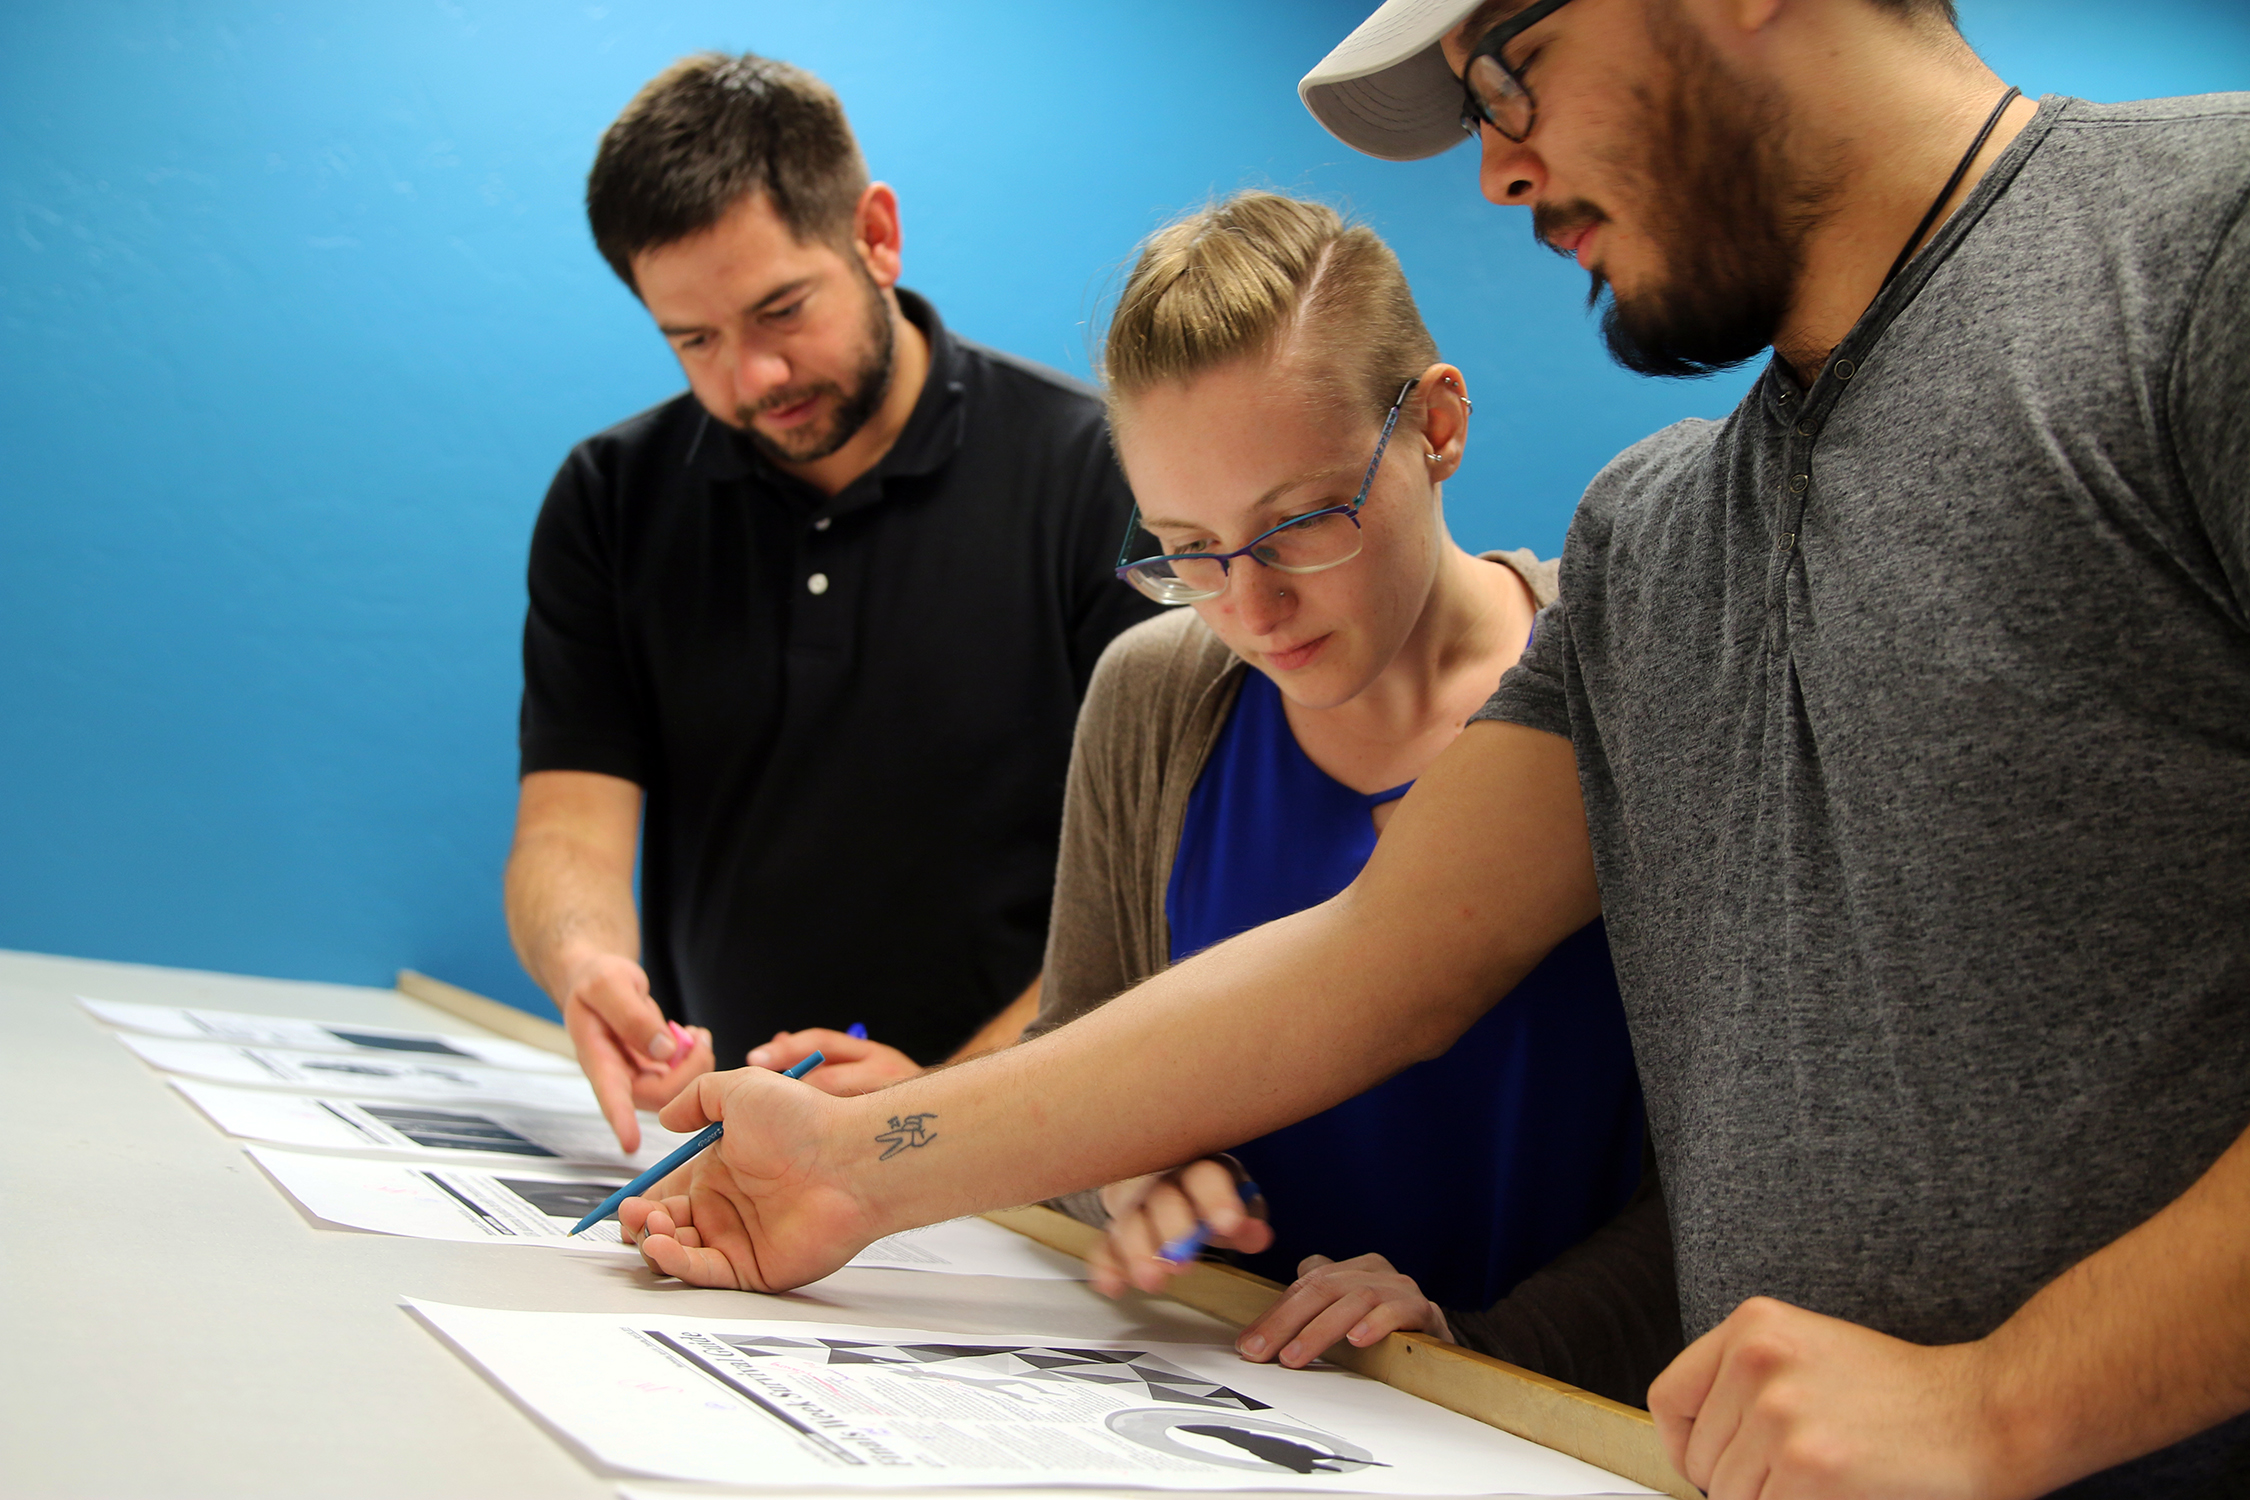 Students working on page layout